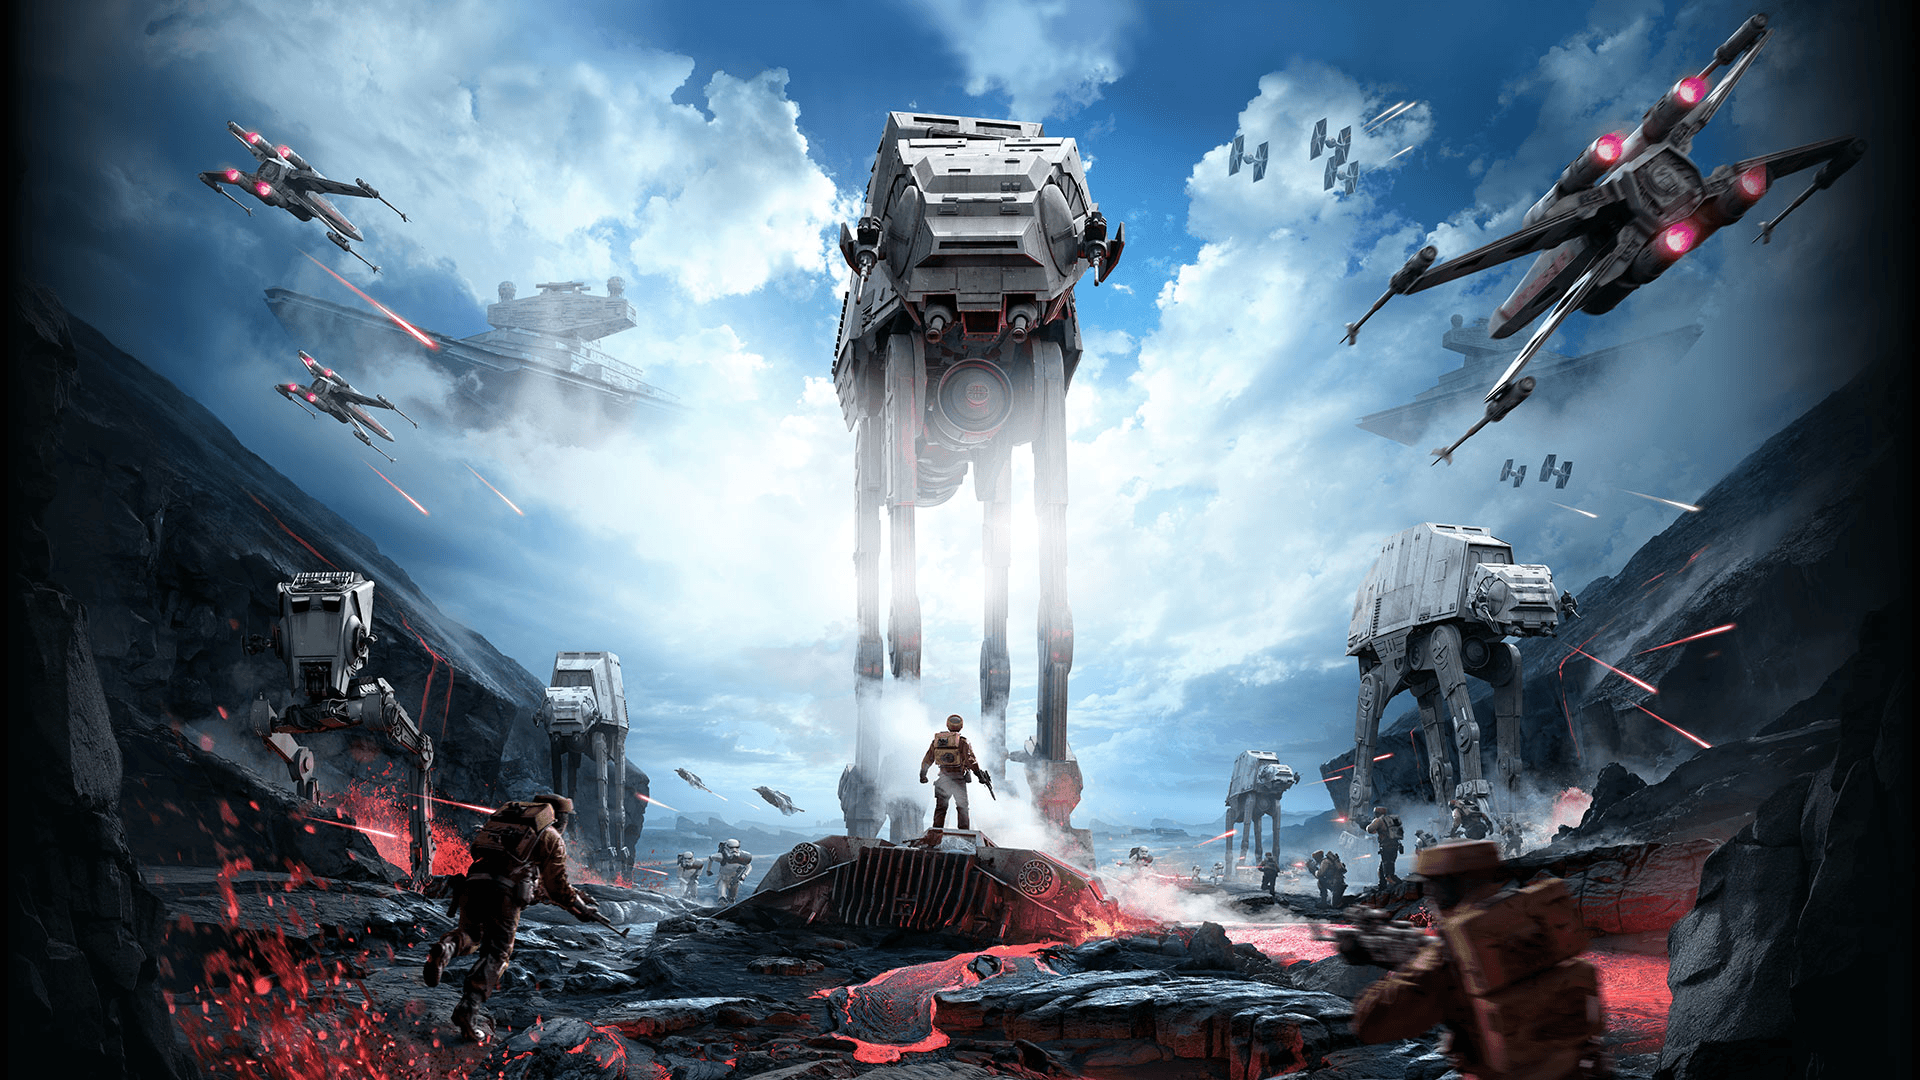 Star Wars Imperial Wallpaper Posted By Michelle Sellers